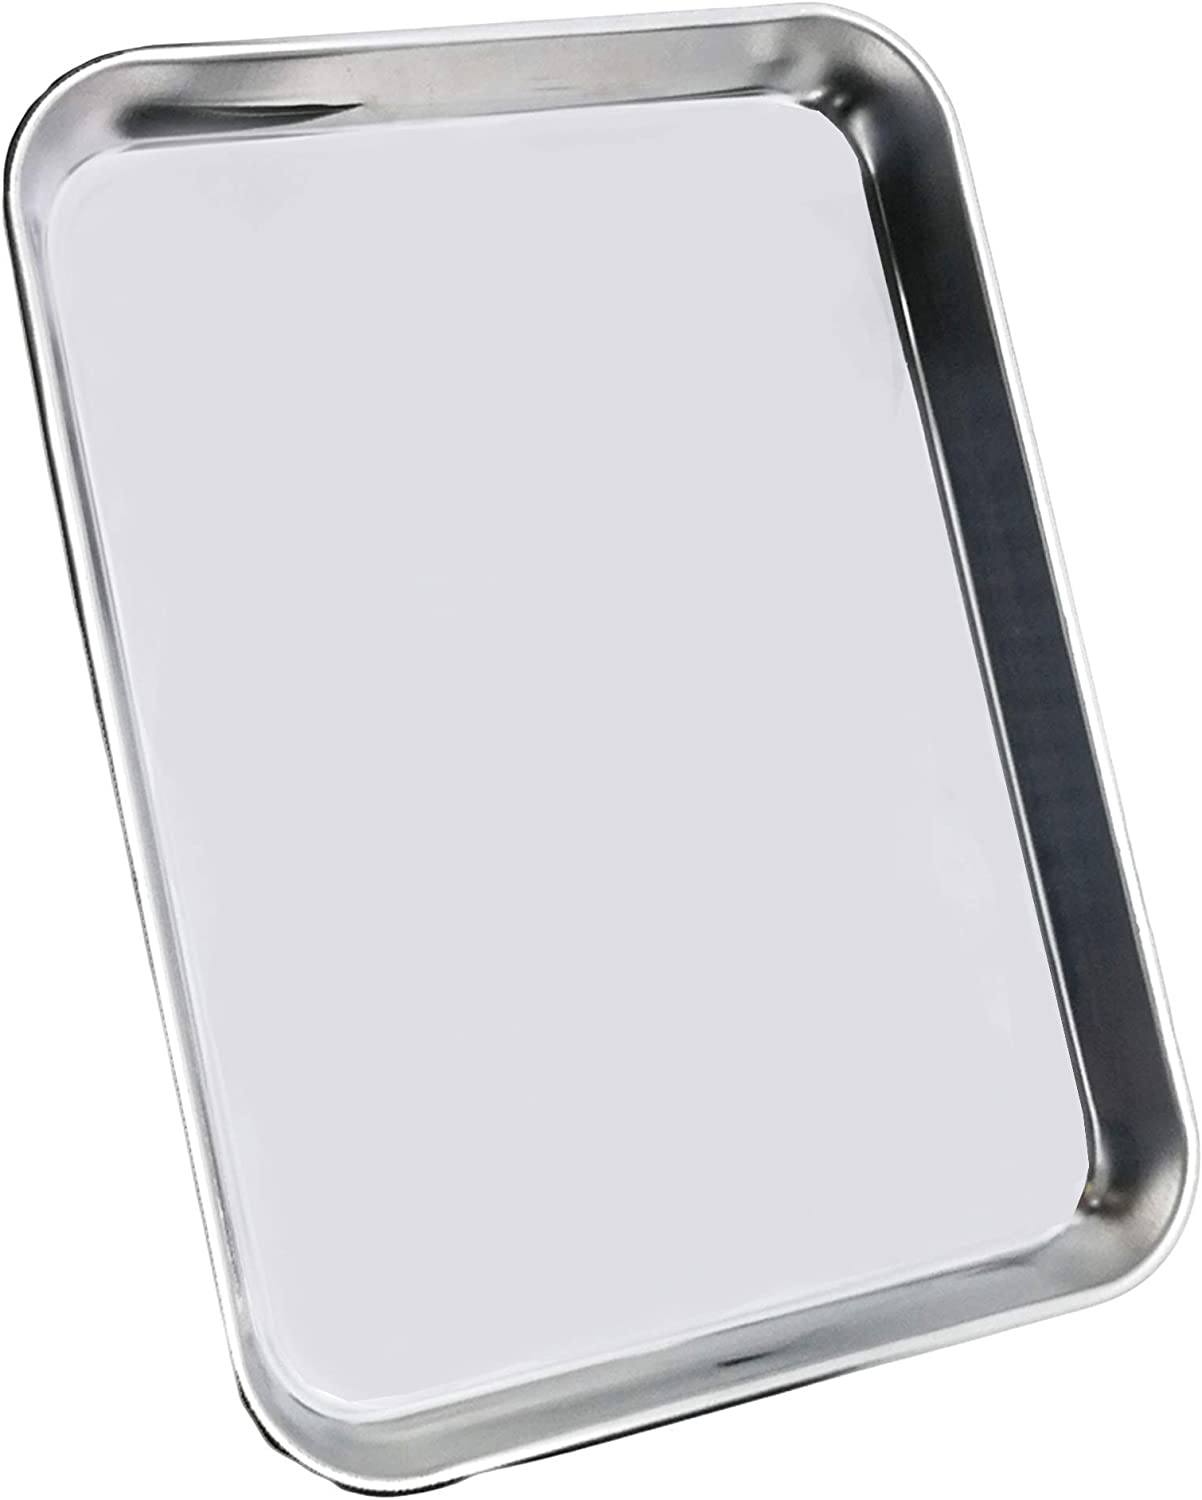 akaYY Stainless Steel Small Toaster Oven Tray